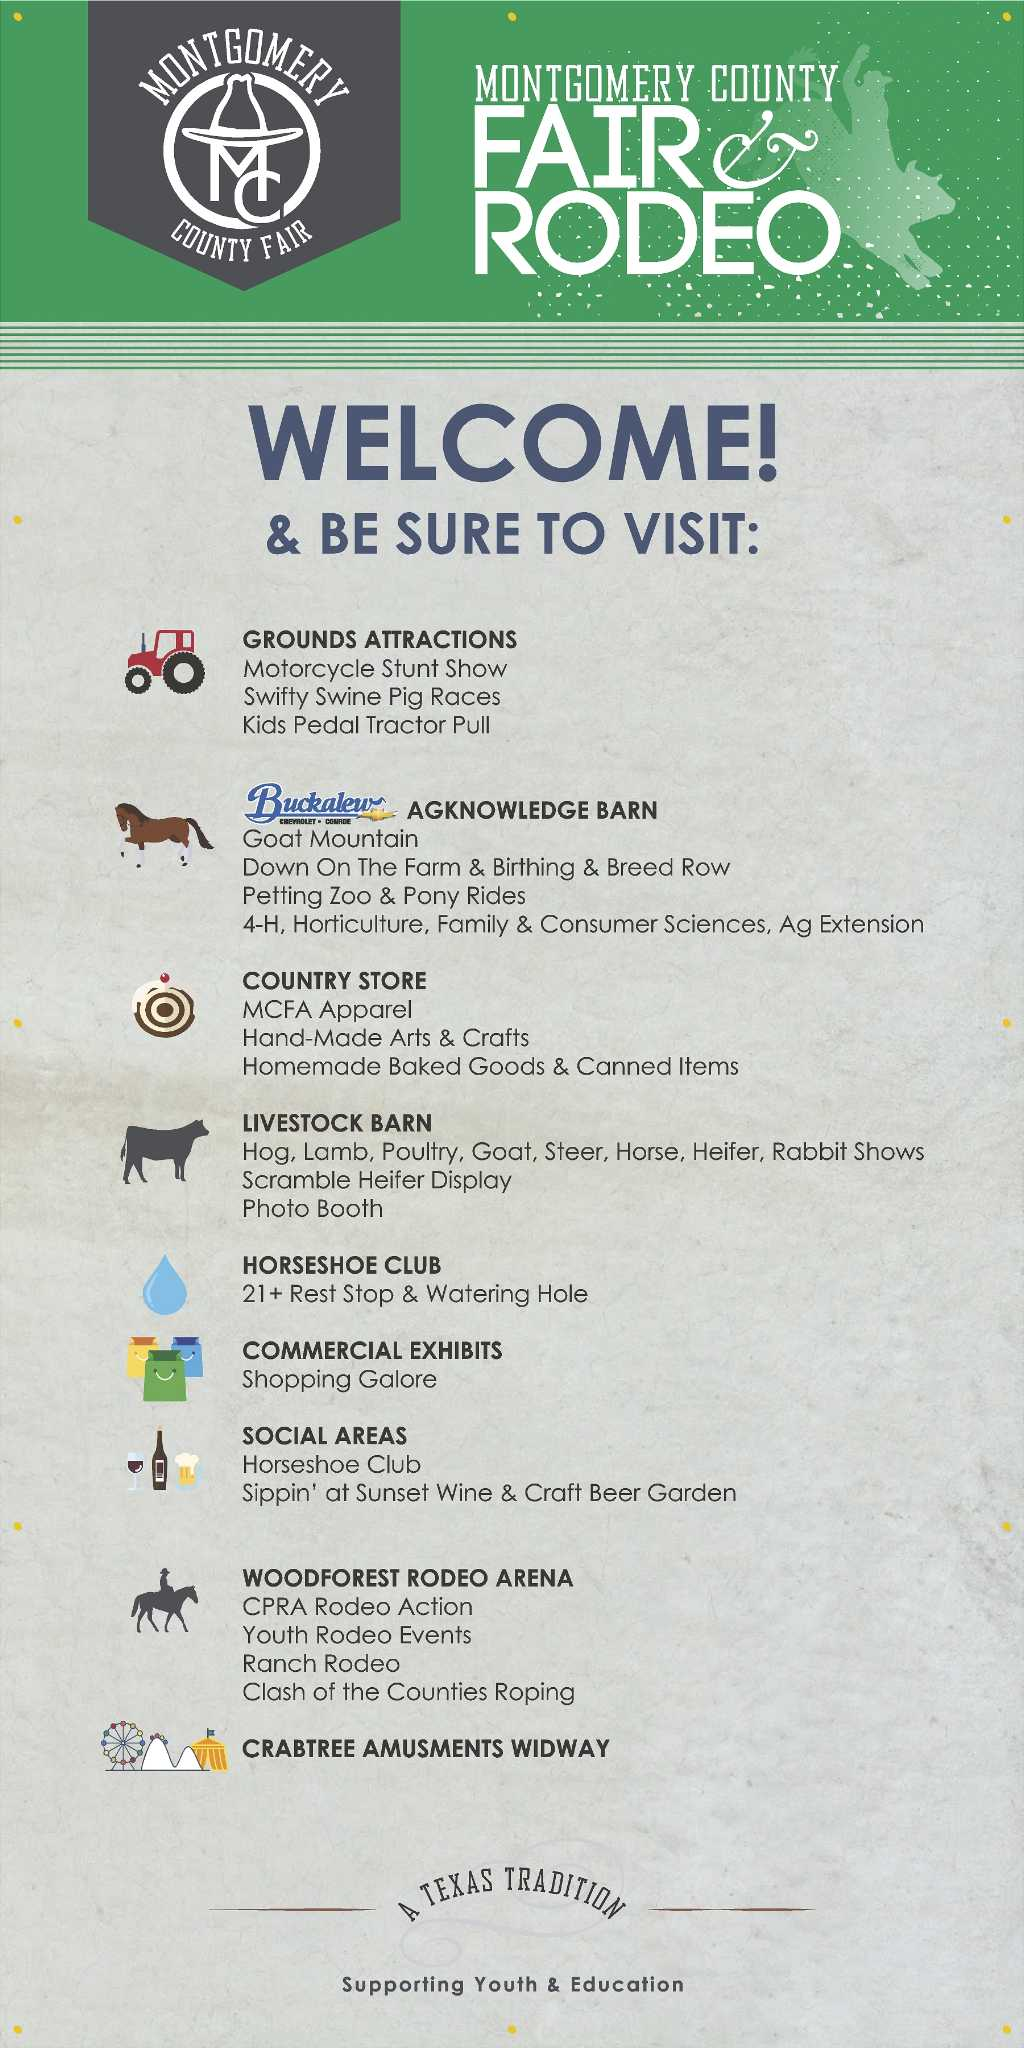 2018 Schedule Of Events At The Montgomery County Fair